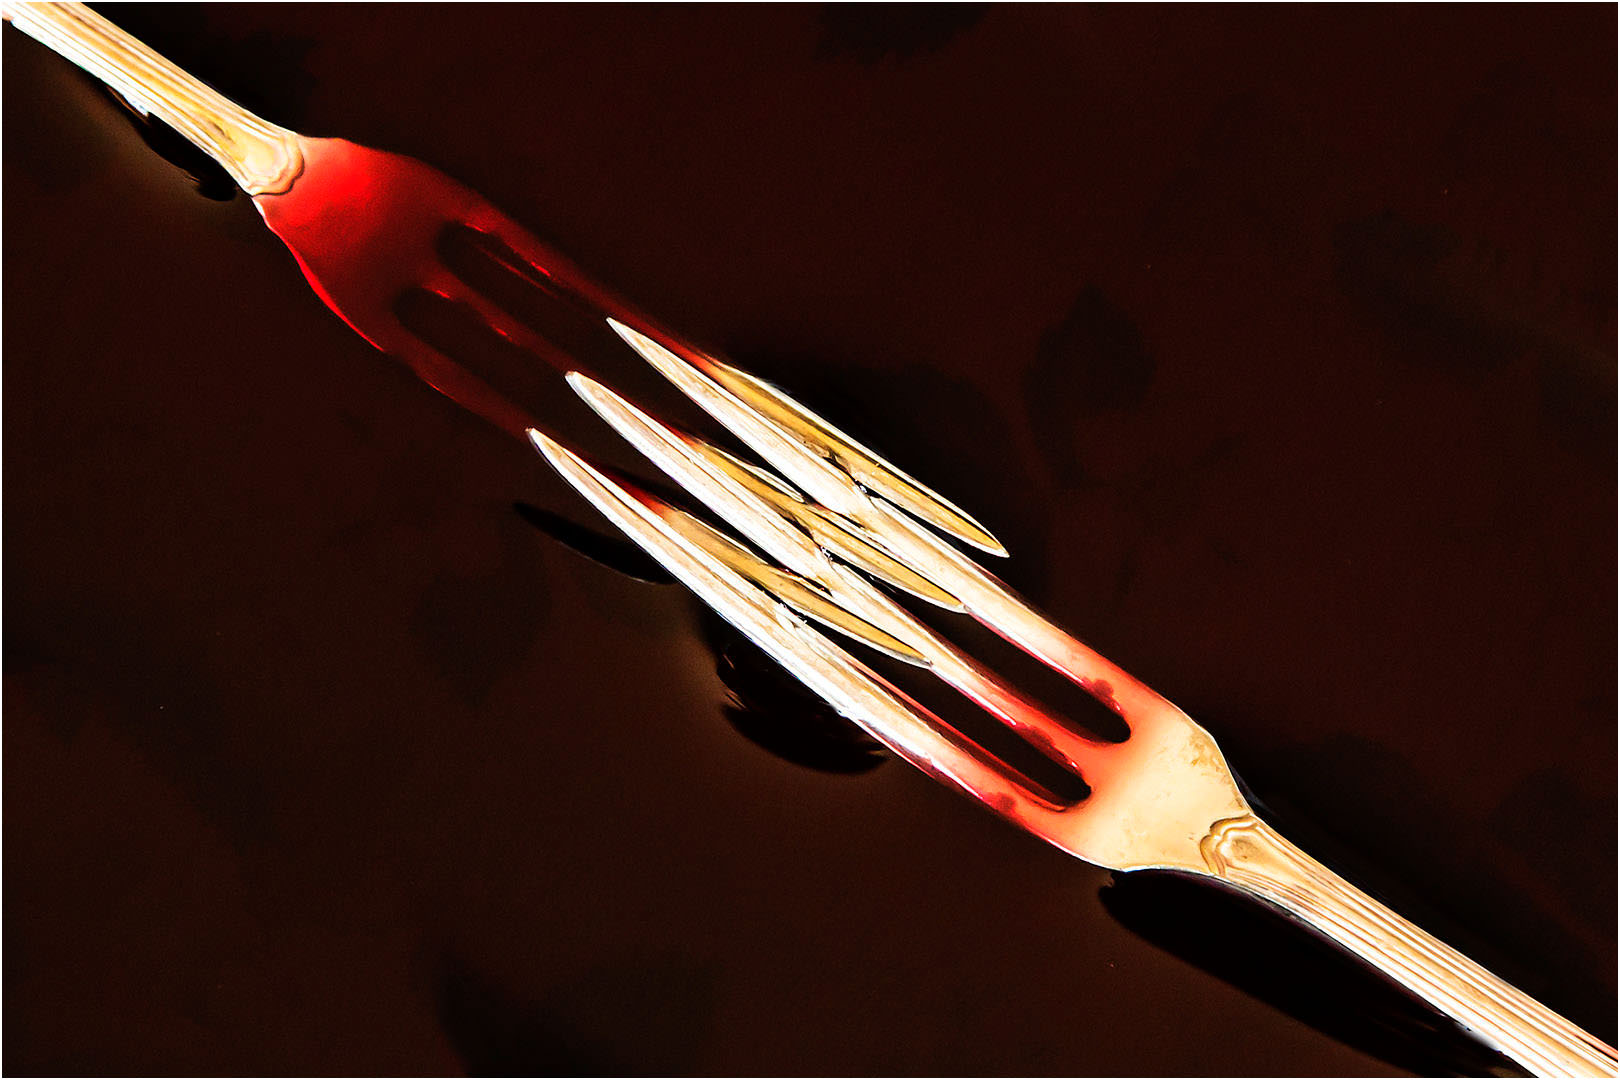 Forks in Red Wine